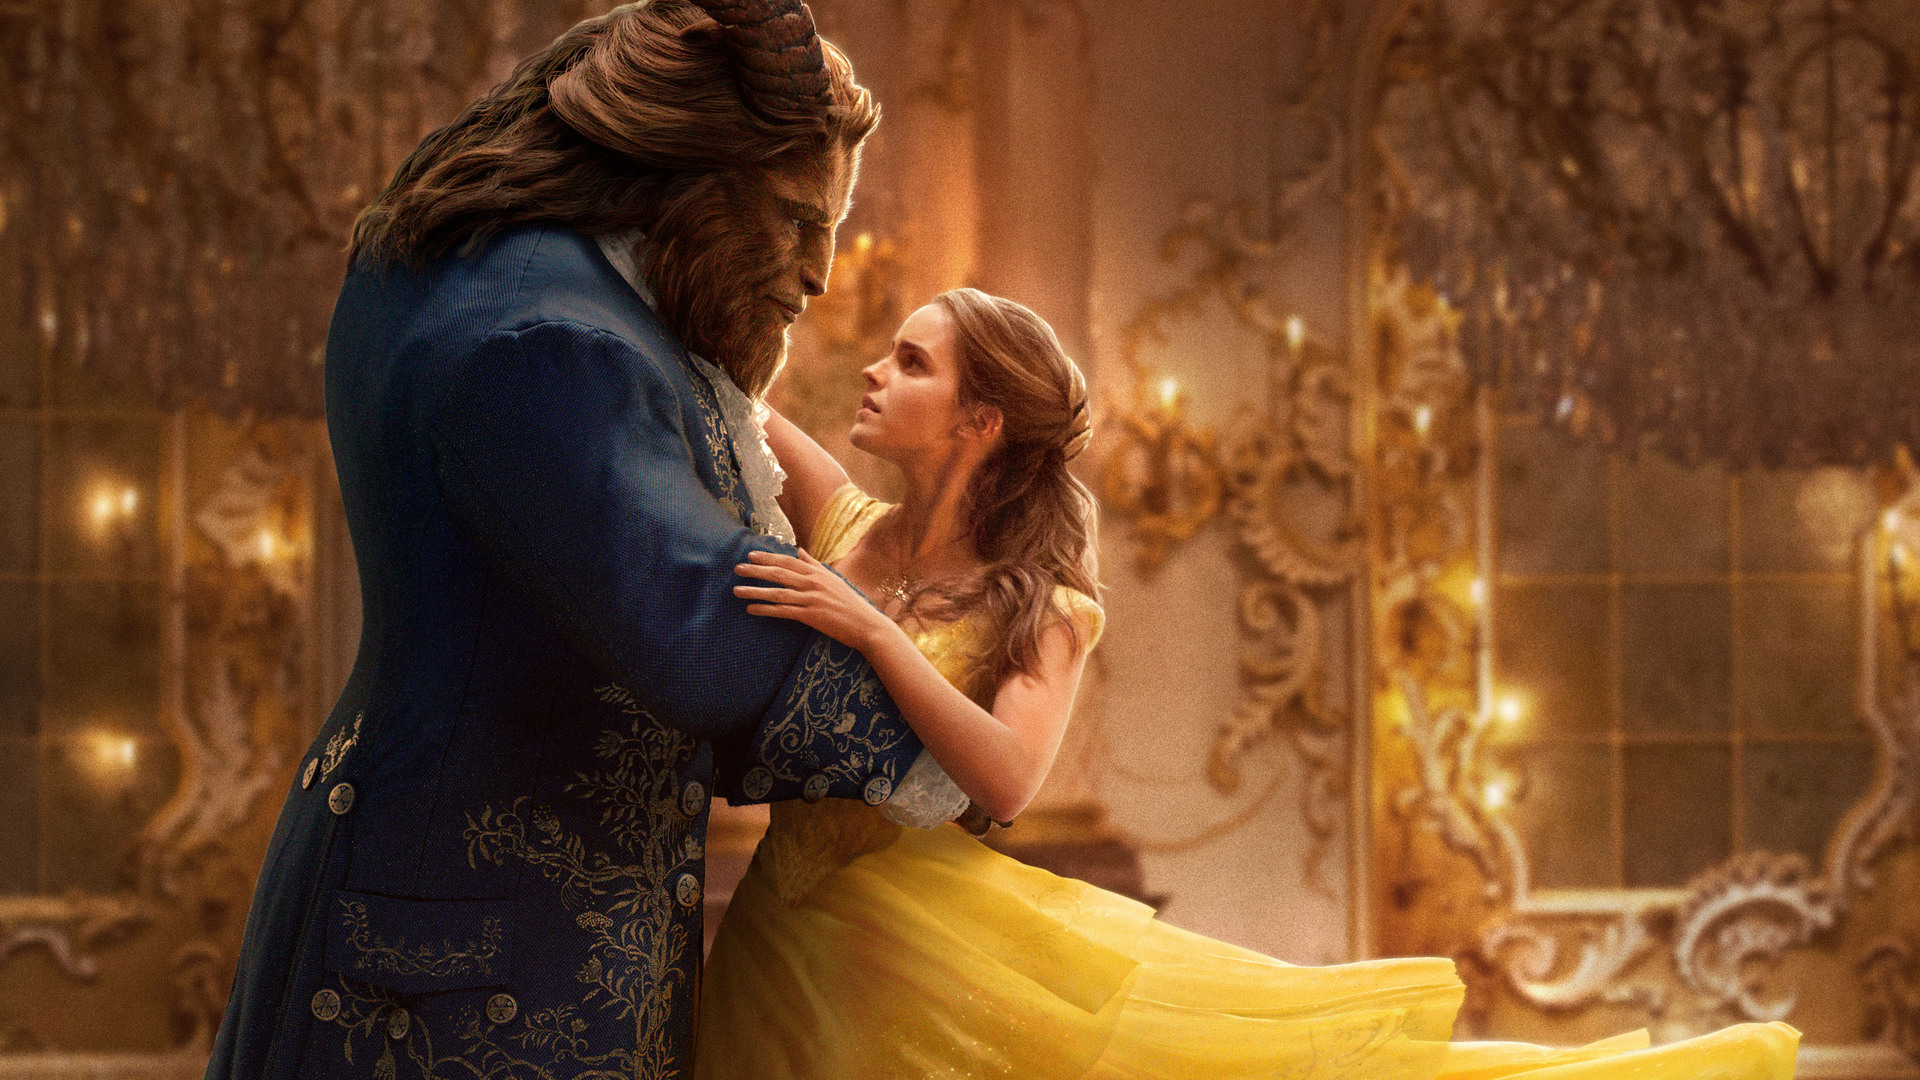 1920x1080 Beauty And The Beast Laptop Full Hd 1080p Hd 4k